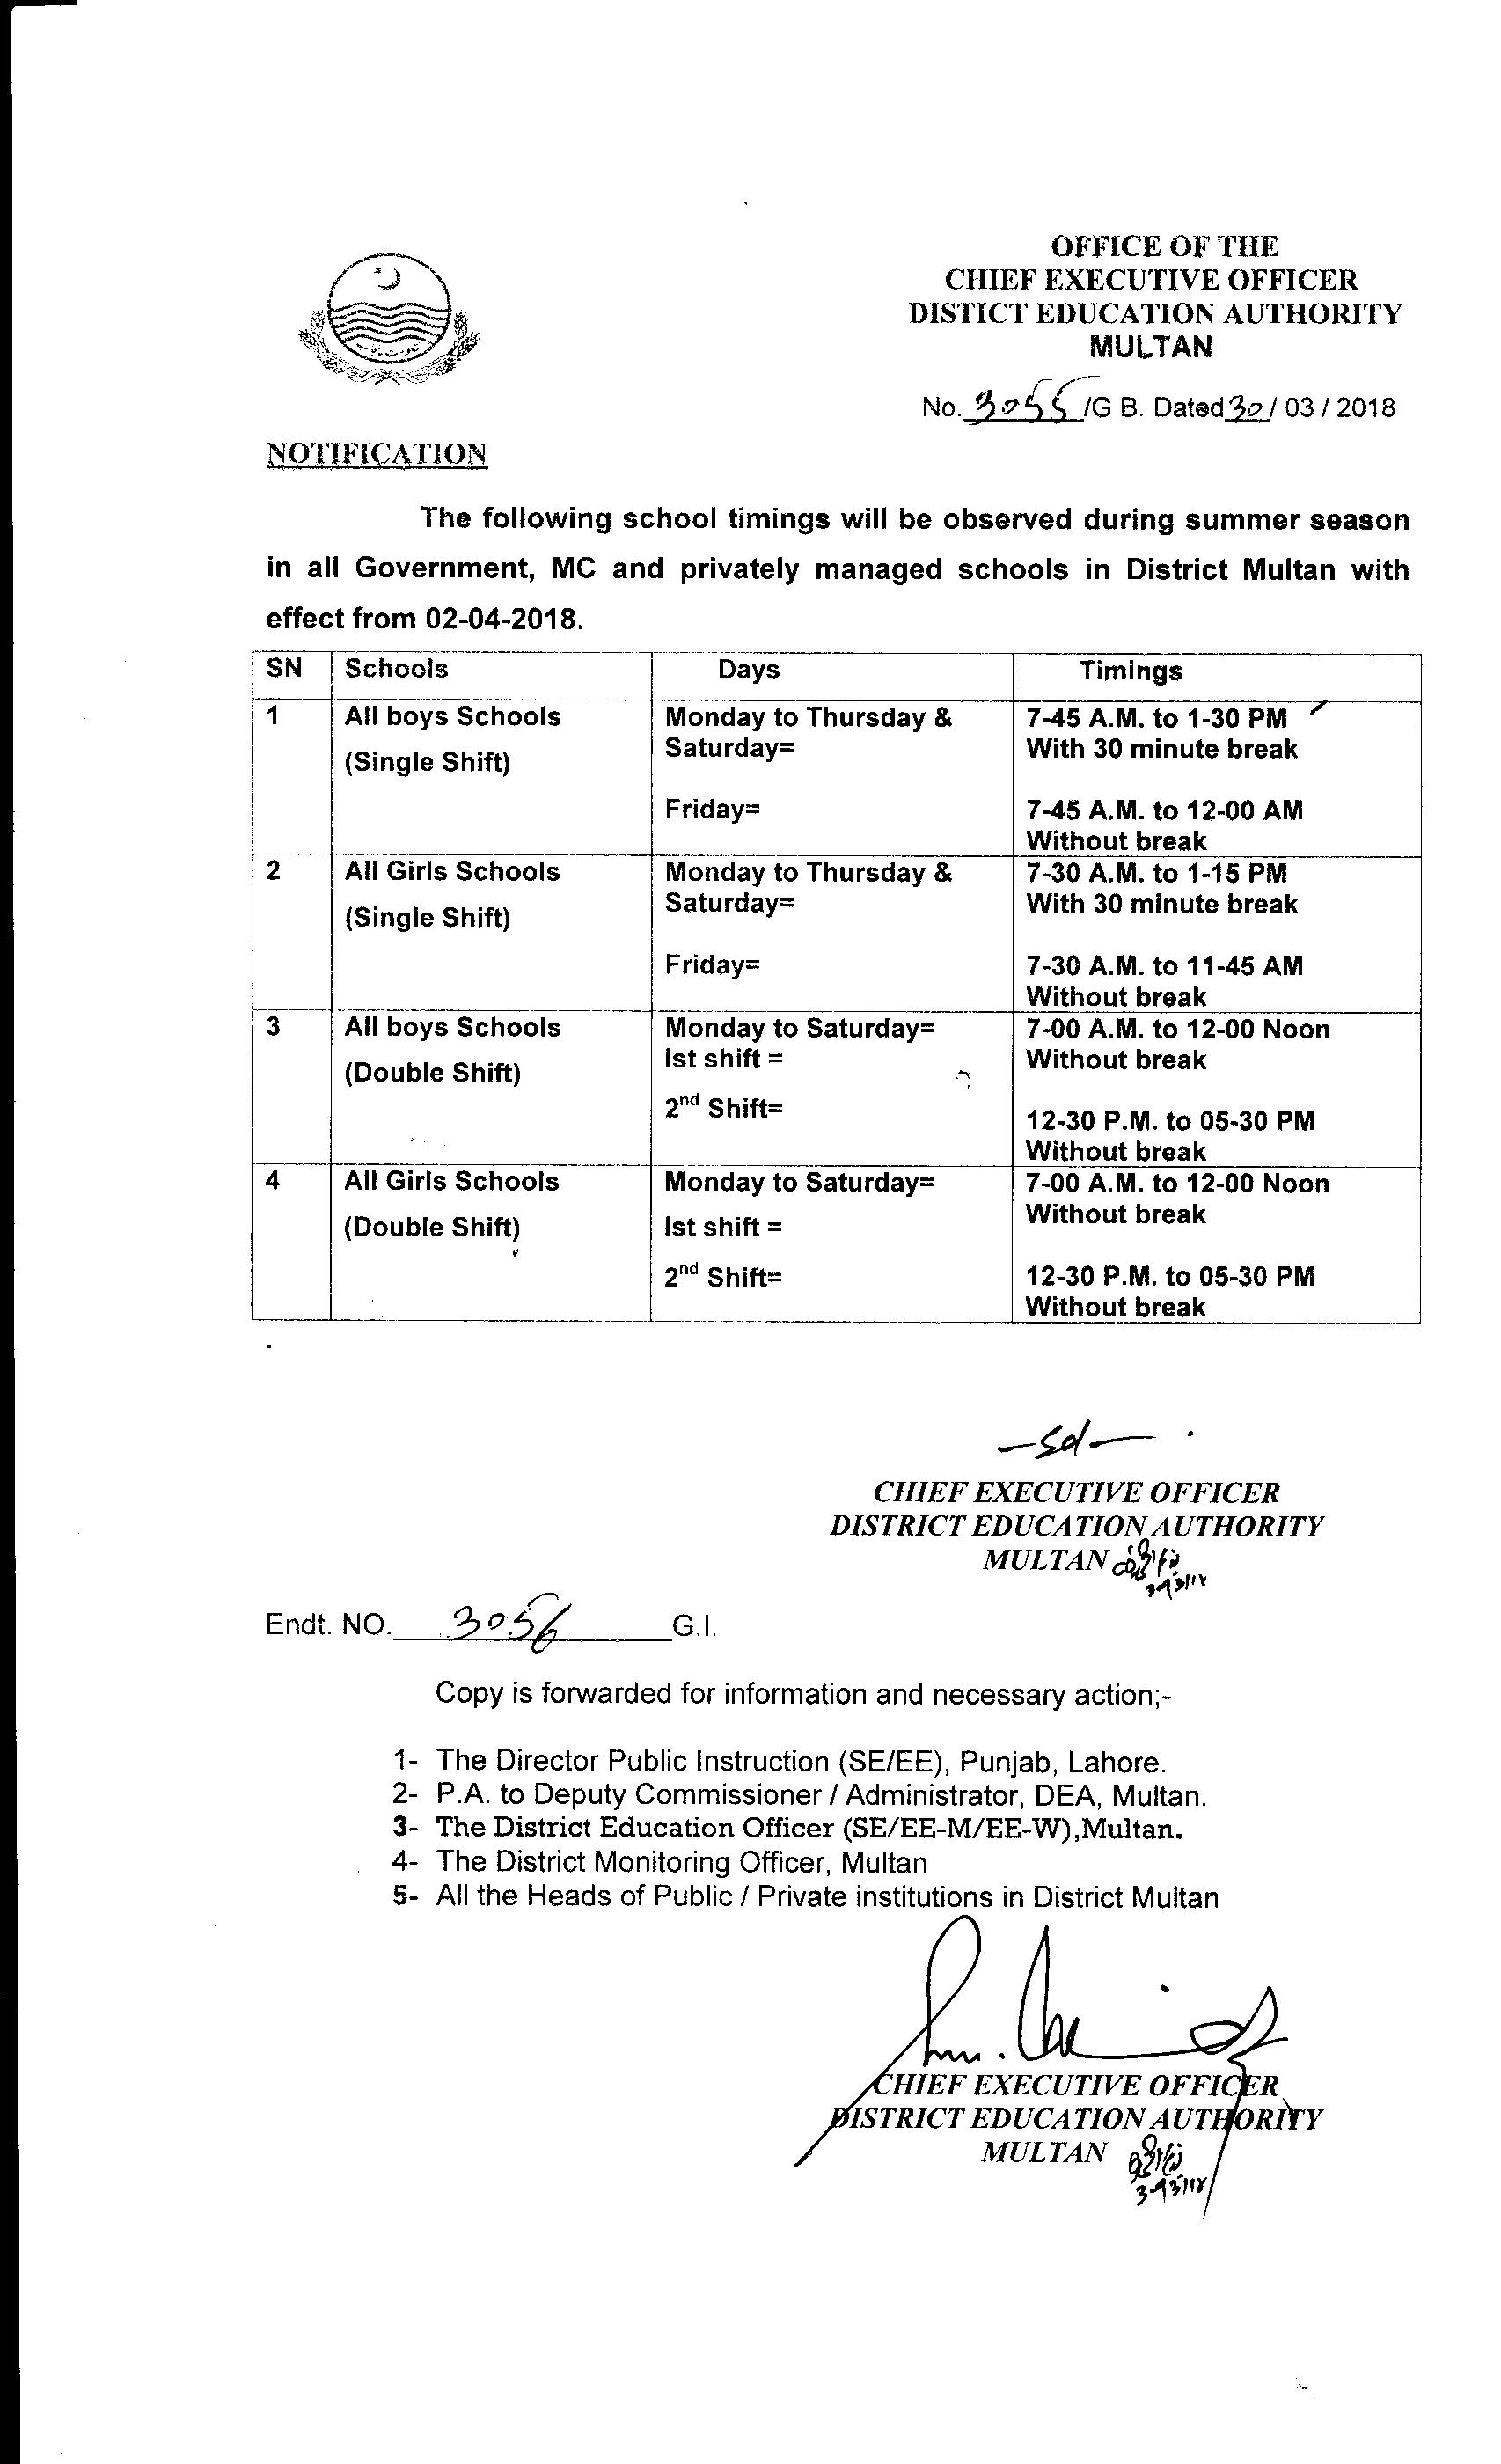 School Timings Summer Season 2018-Notification by CEO, DEA Multan